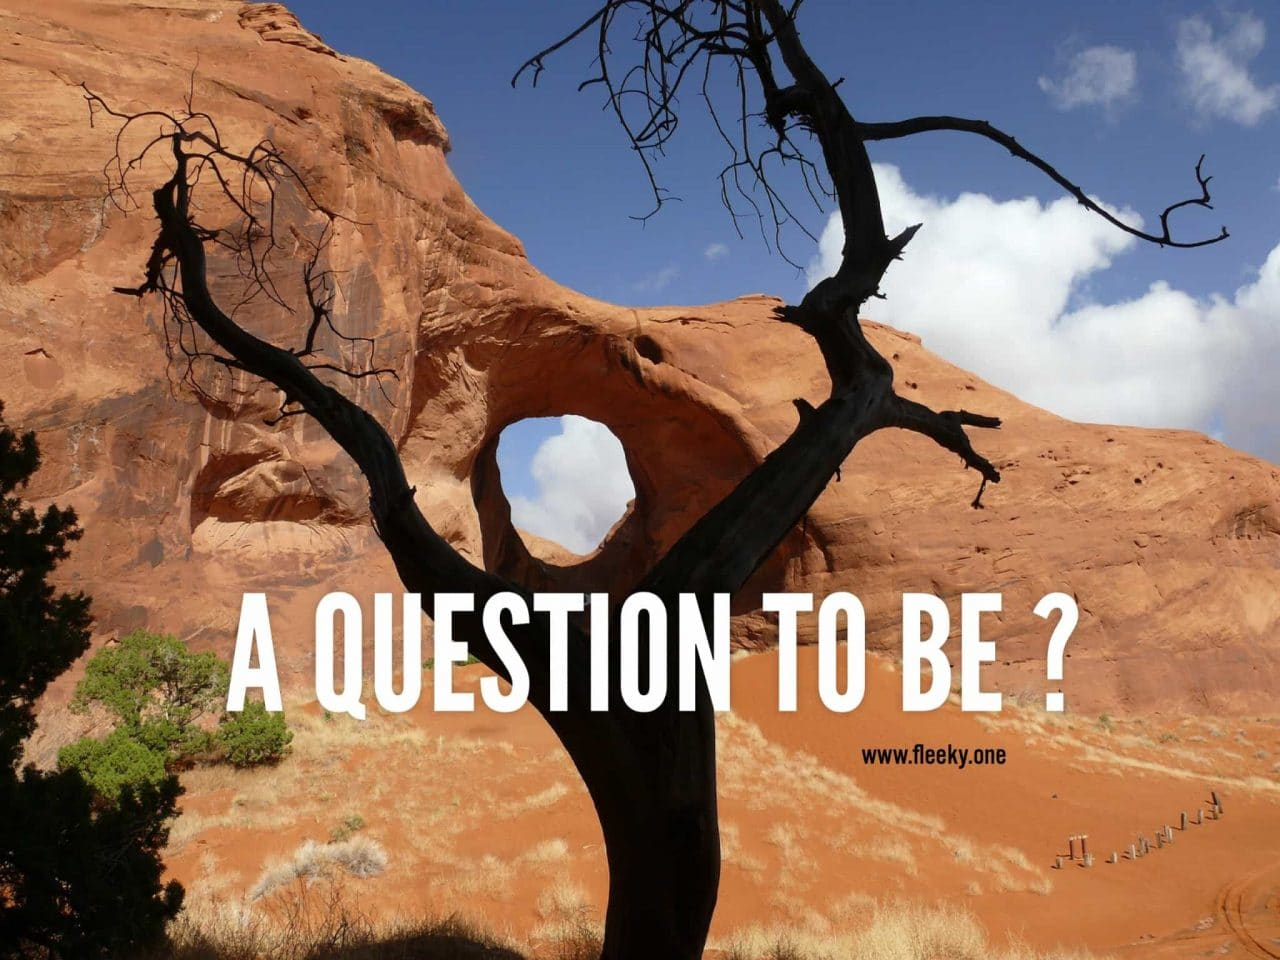 A question to be